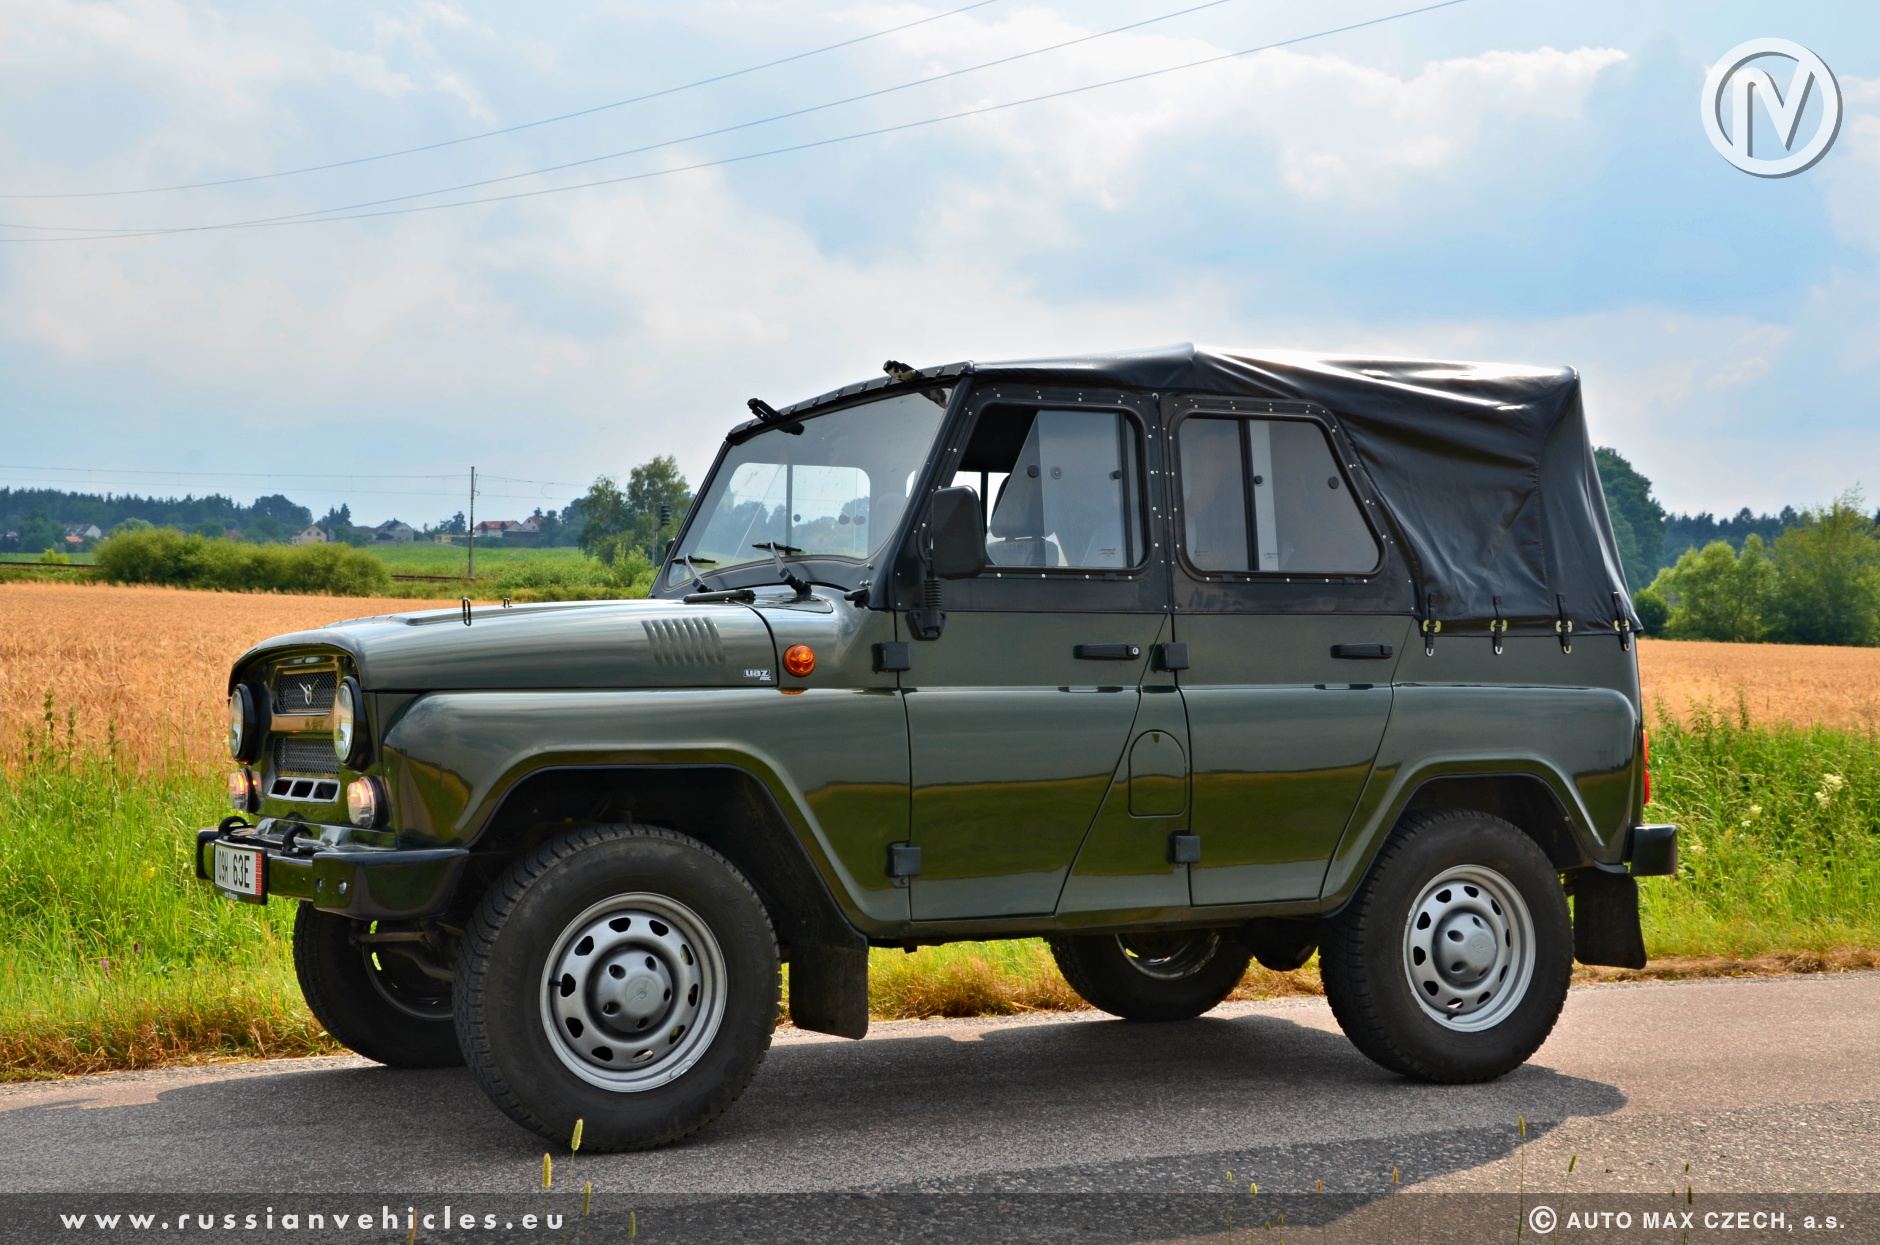 When will the UAZ-Patriot with automatic transmission 88